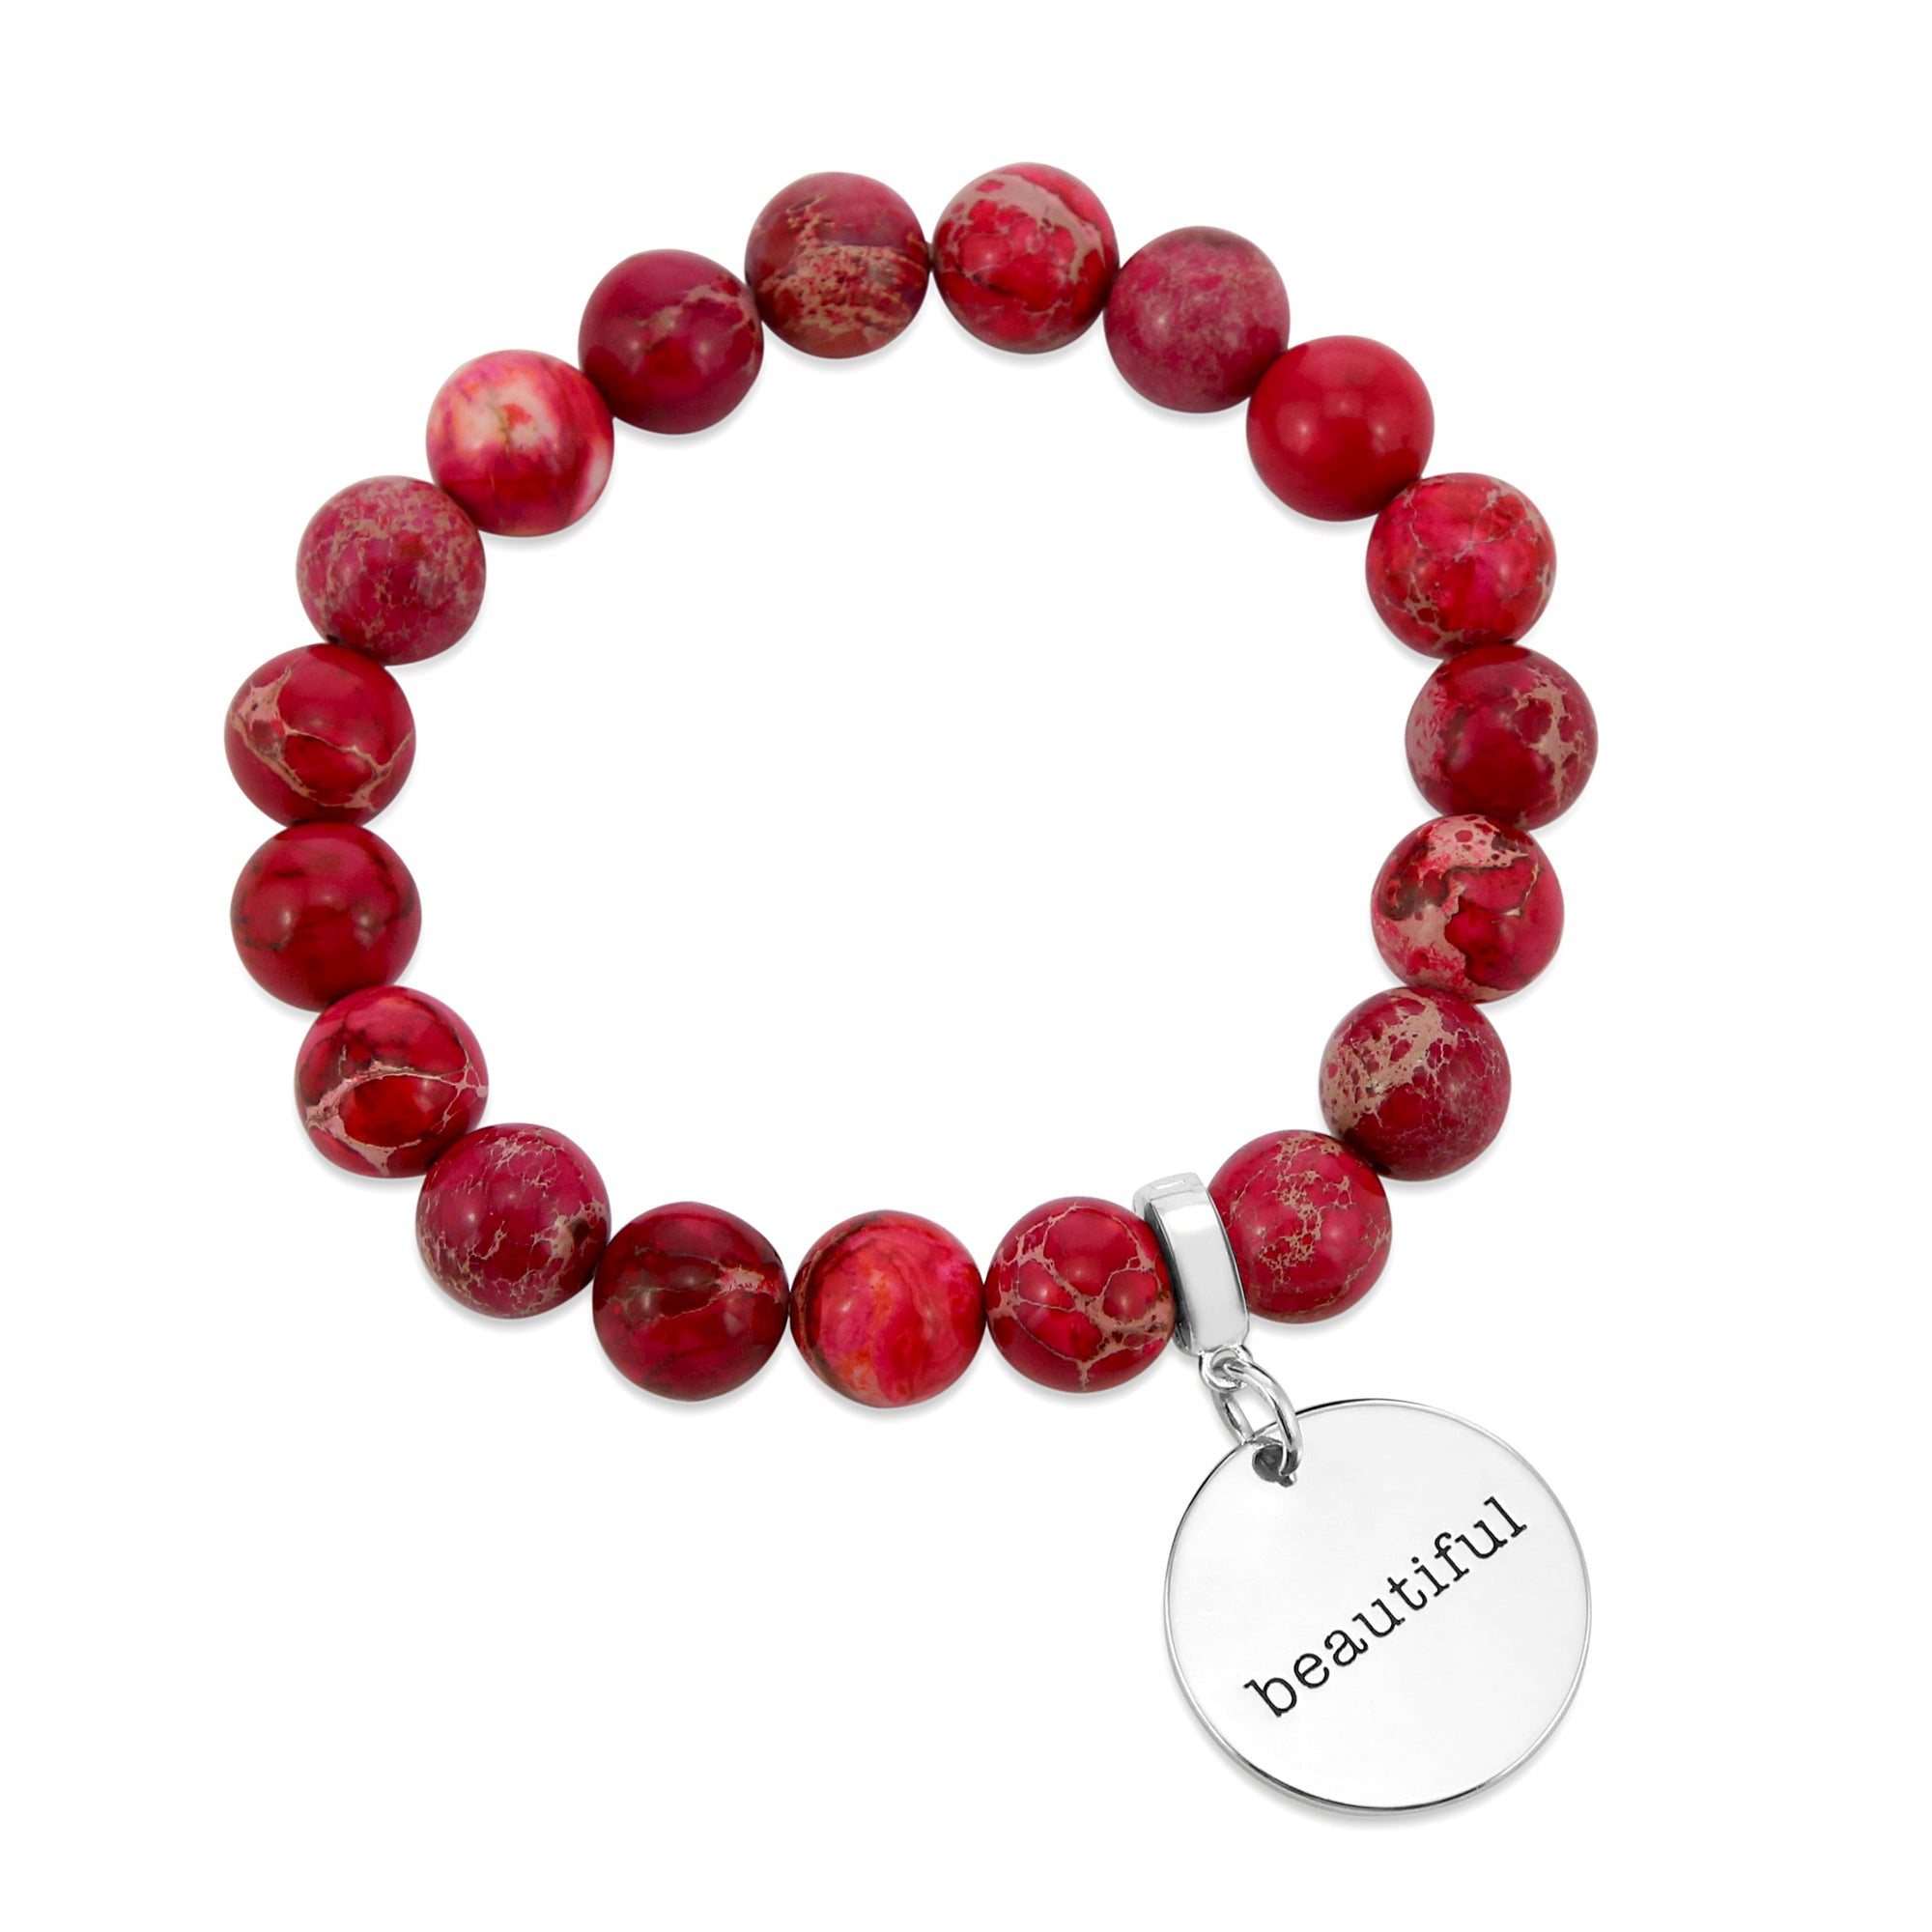 Precious Stone Bracelet ' BEAUTIFUL ' Imperial Jasper 10MM BEADS - Fuchsia Fiesta (5003-5)